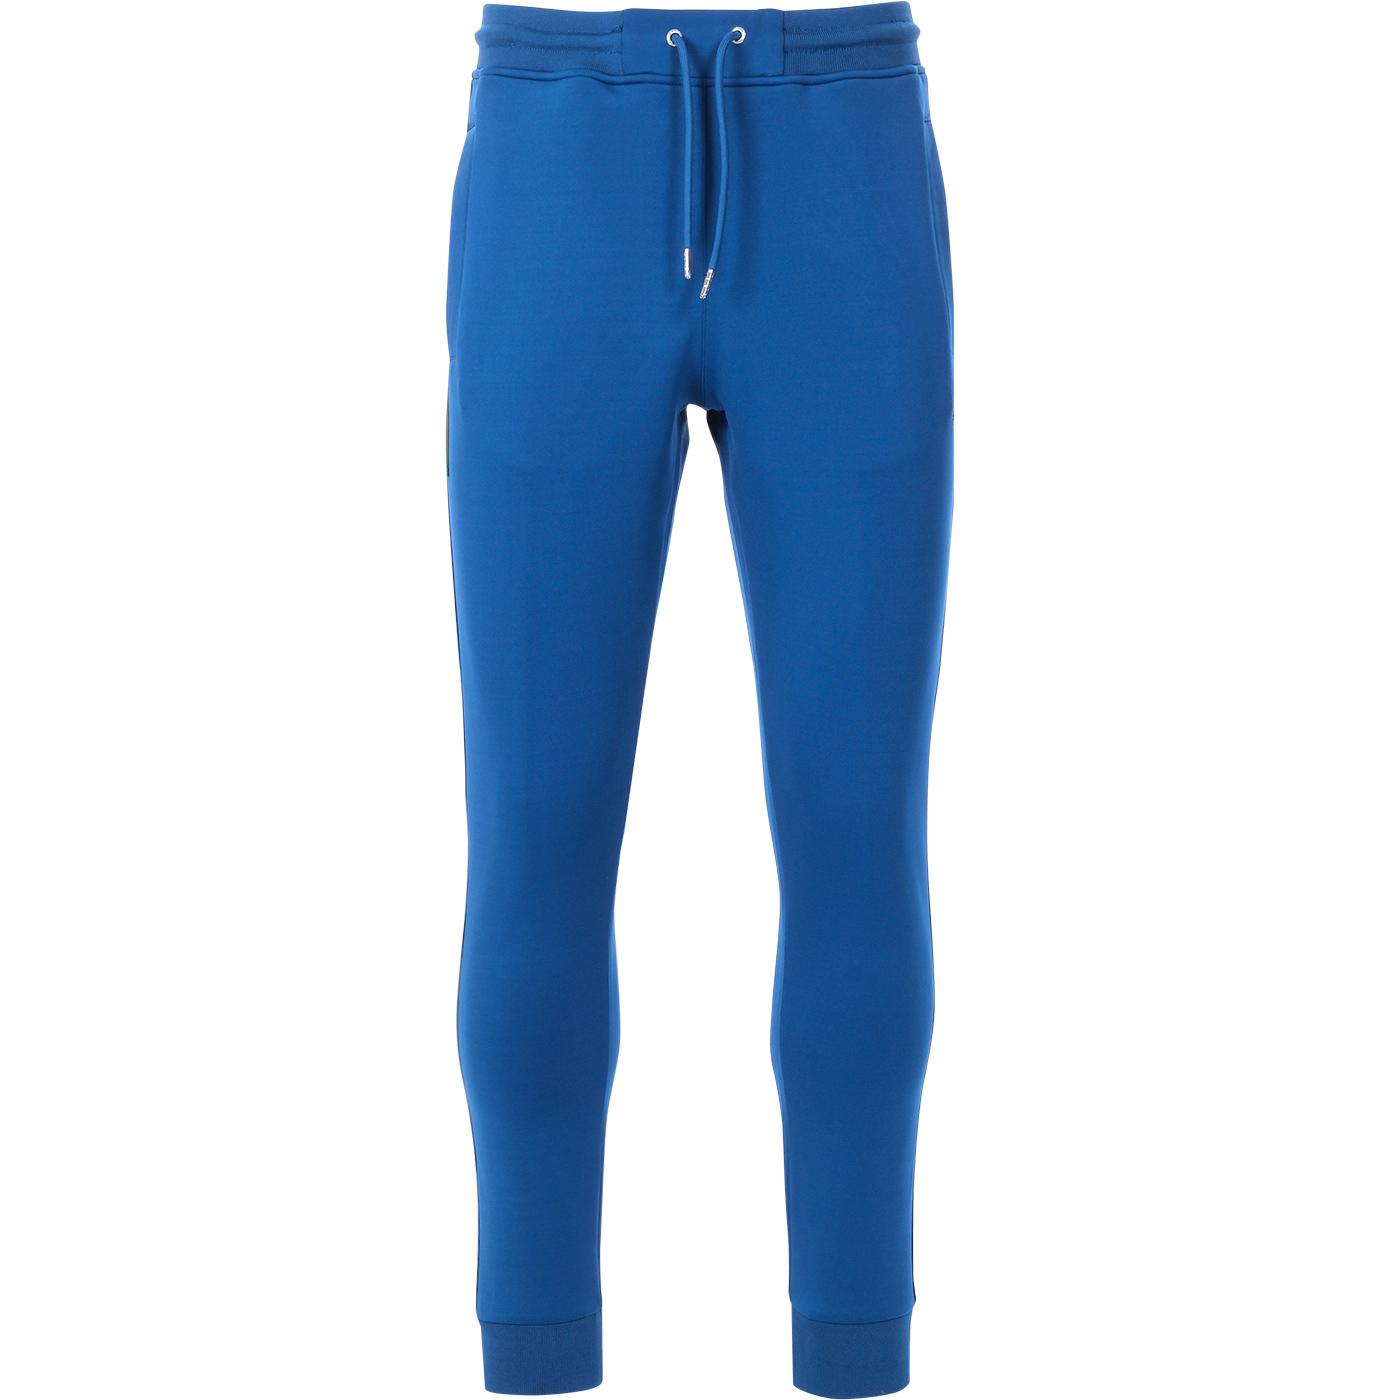 And Good As Gold LUKE SPORT Track Bottoms (Blue)